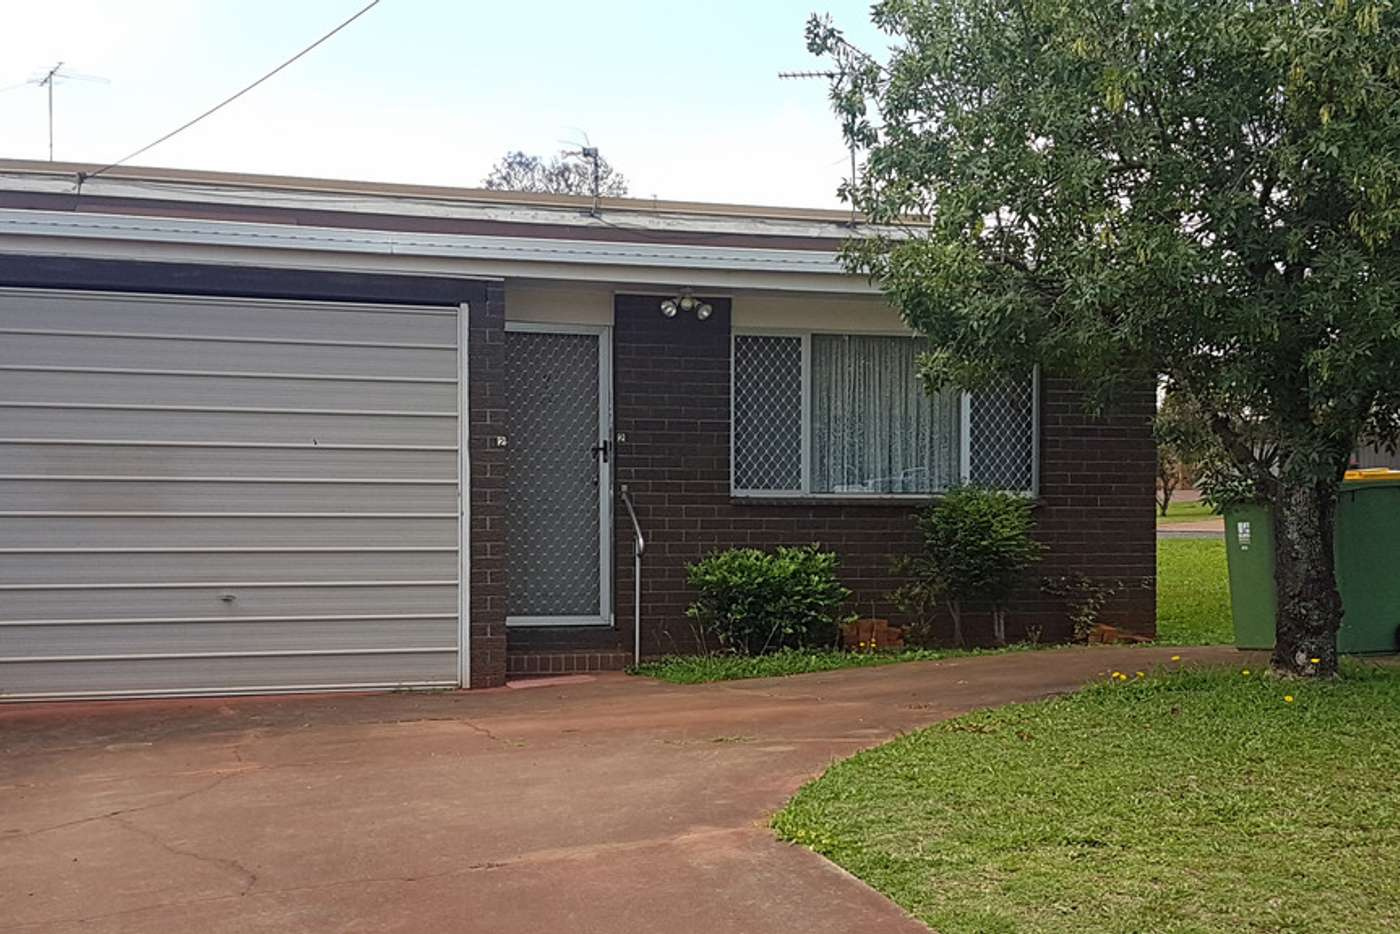 Main view of Homely house listing, 2/32 Helen Street, Harristown QLD 4350